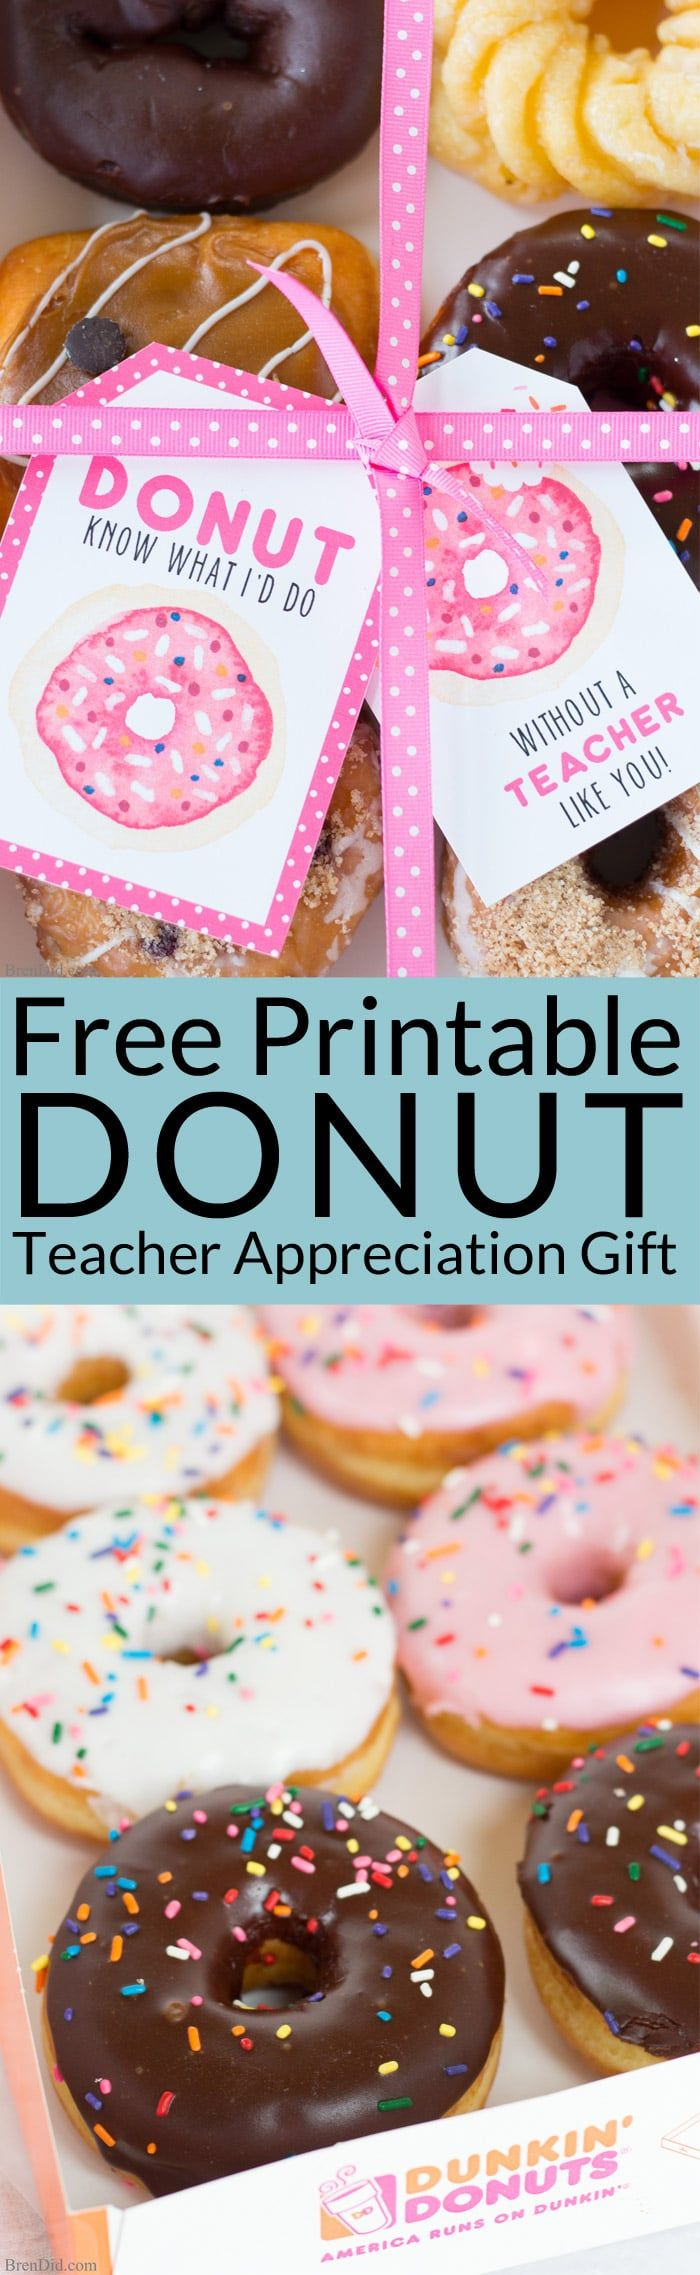 How to Make the Tastiest Teacher Appreciation Gift Ever